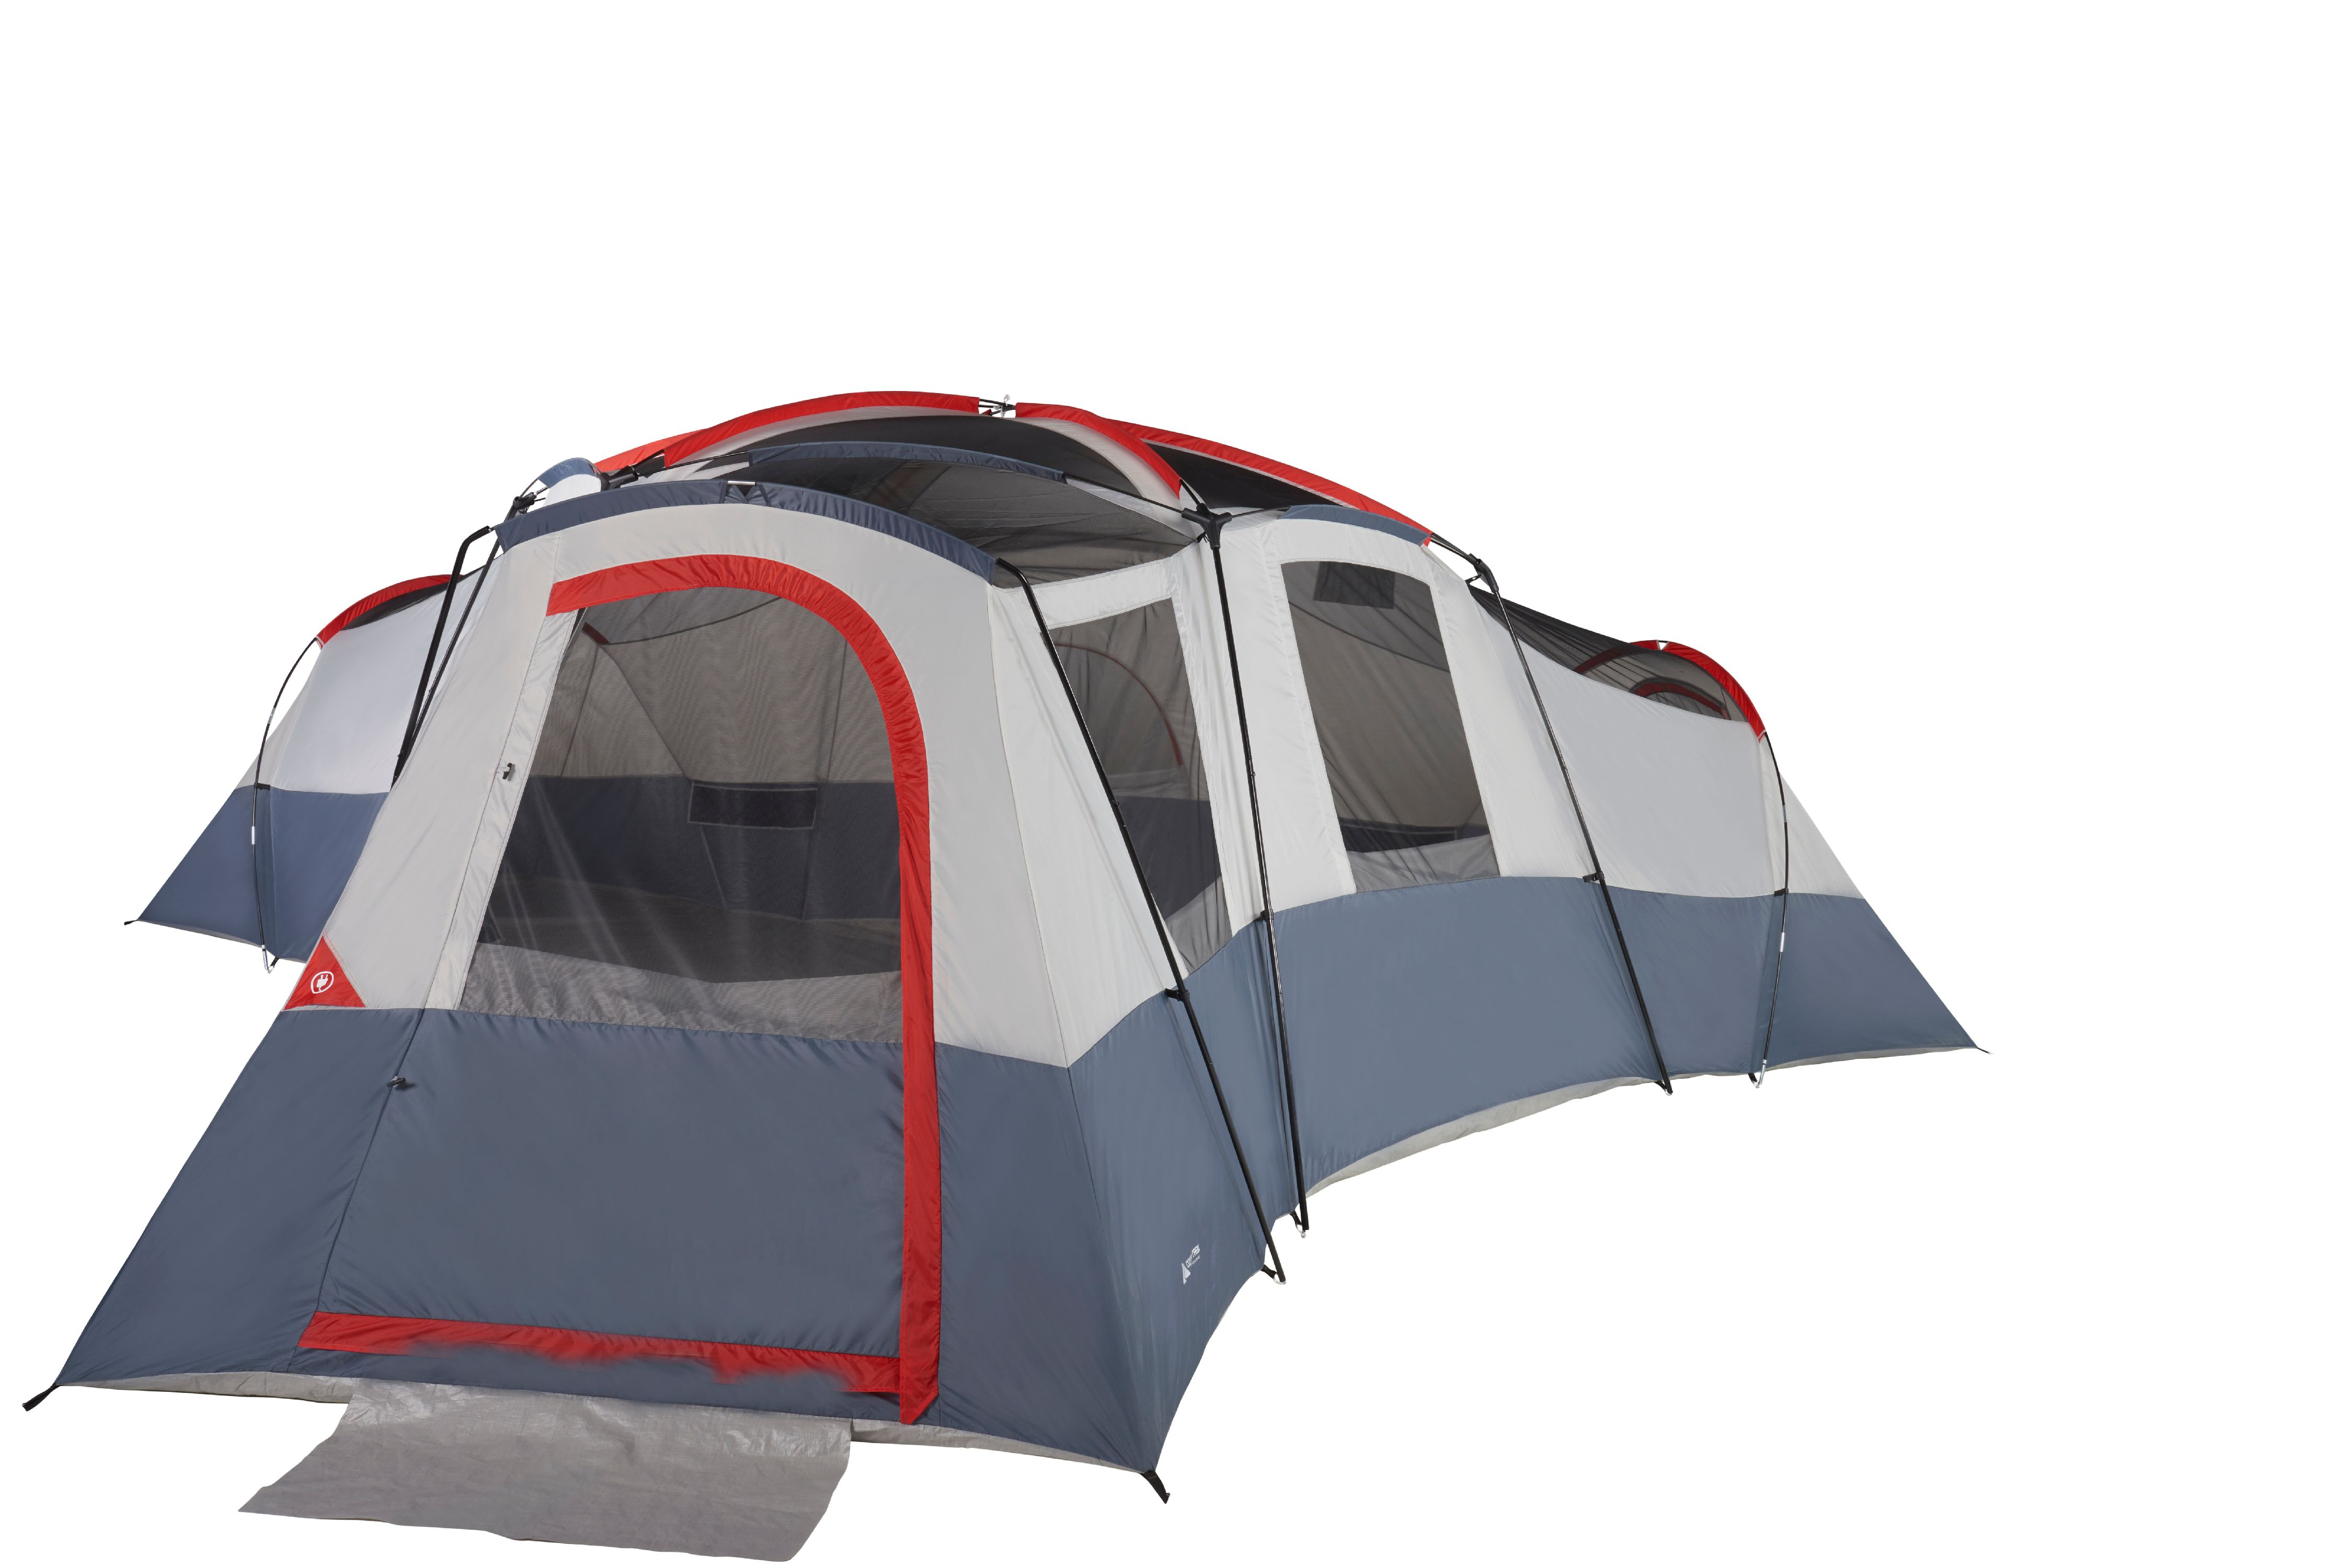 Ozark Trail 20 Person 4 Room Cabin Tent With 4 Separate Entrances